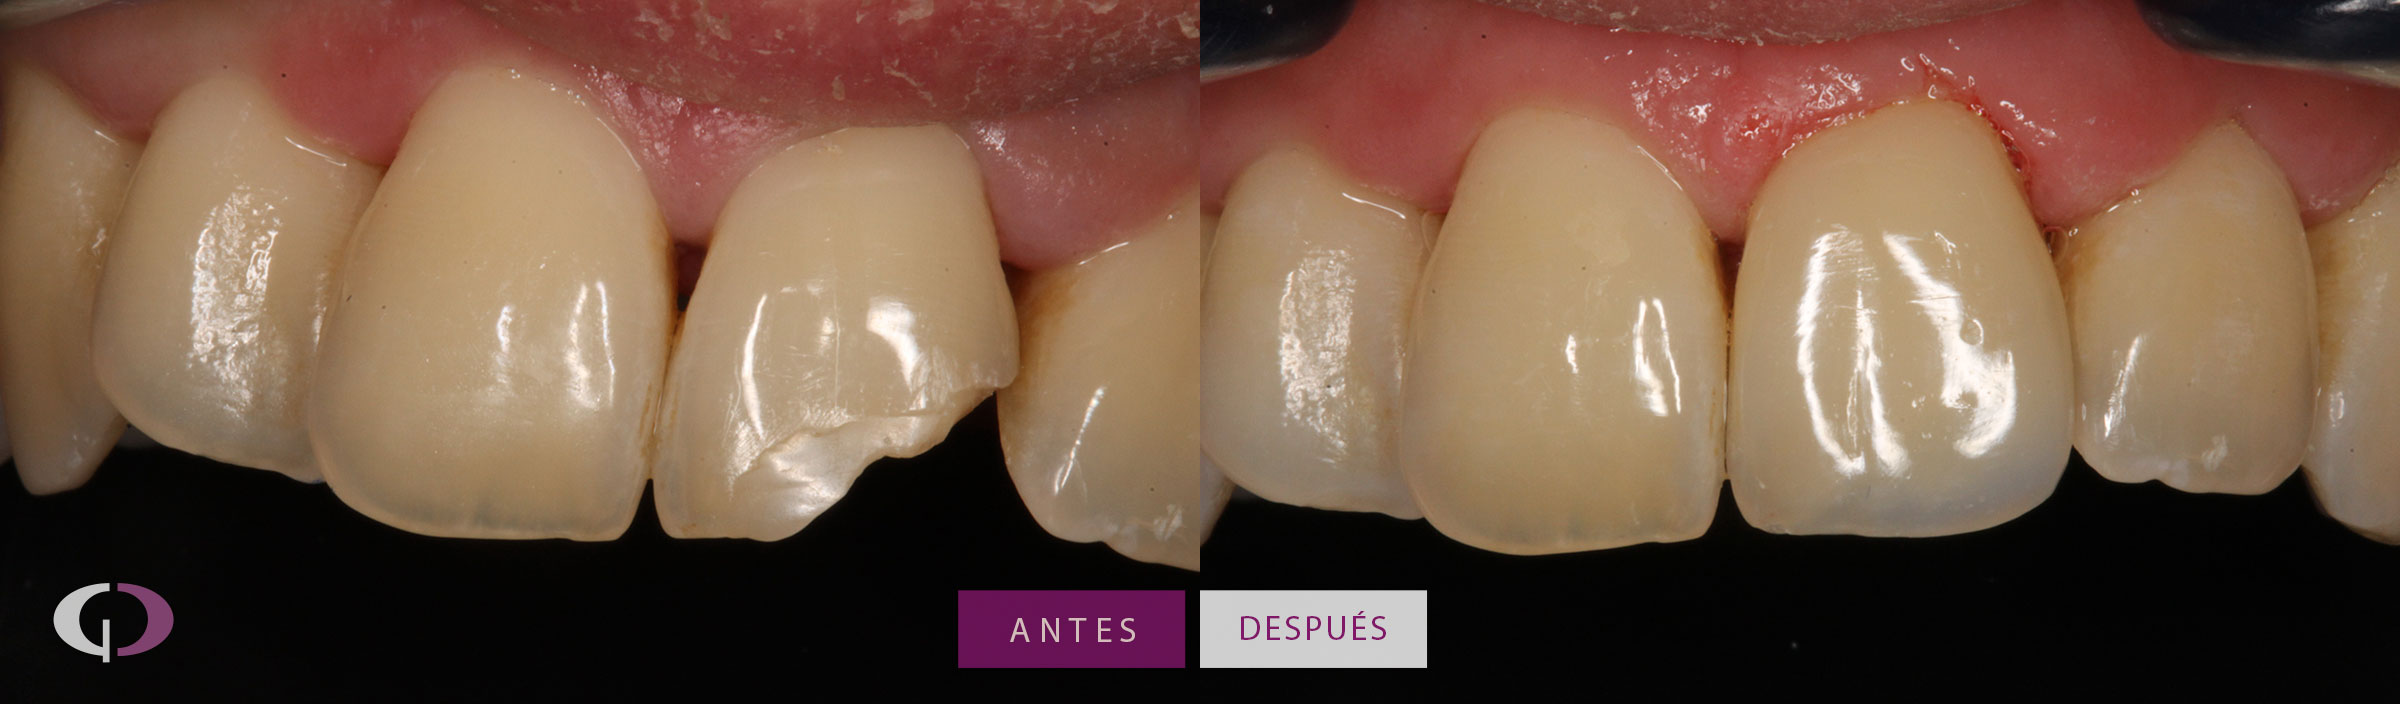 Reconstrucción dental composite